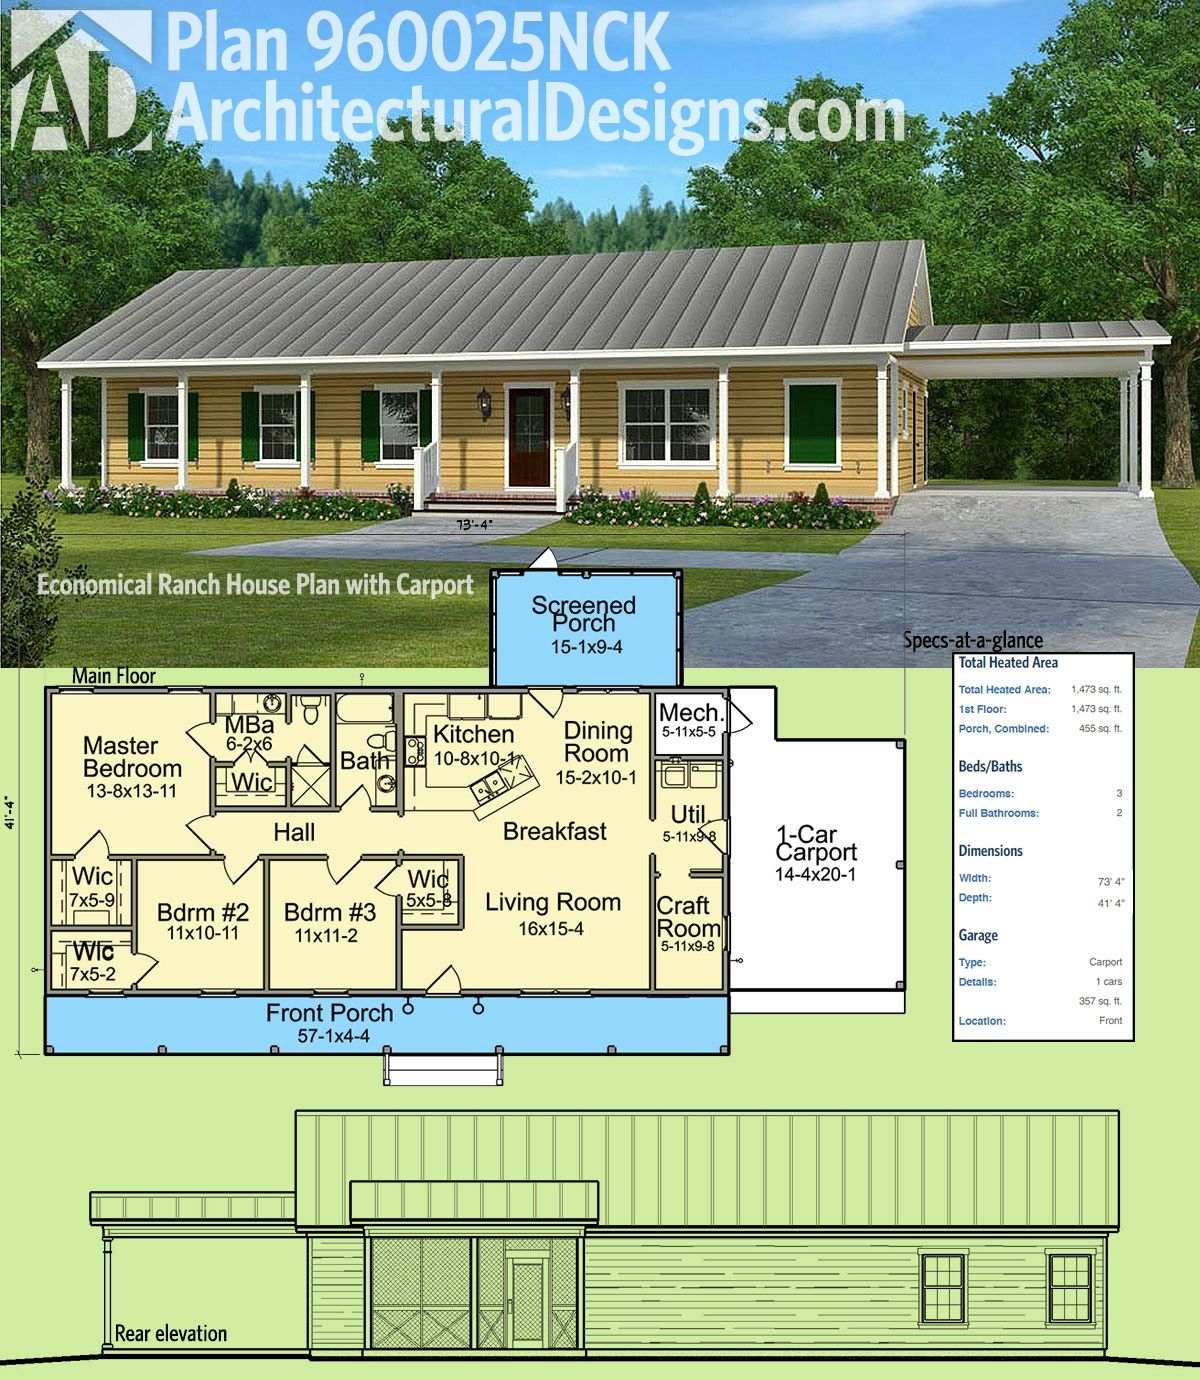 Plan 960025nck economical ranch house plan with carport for Easy home plans